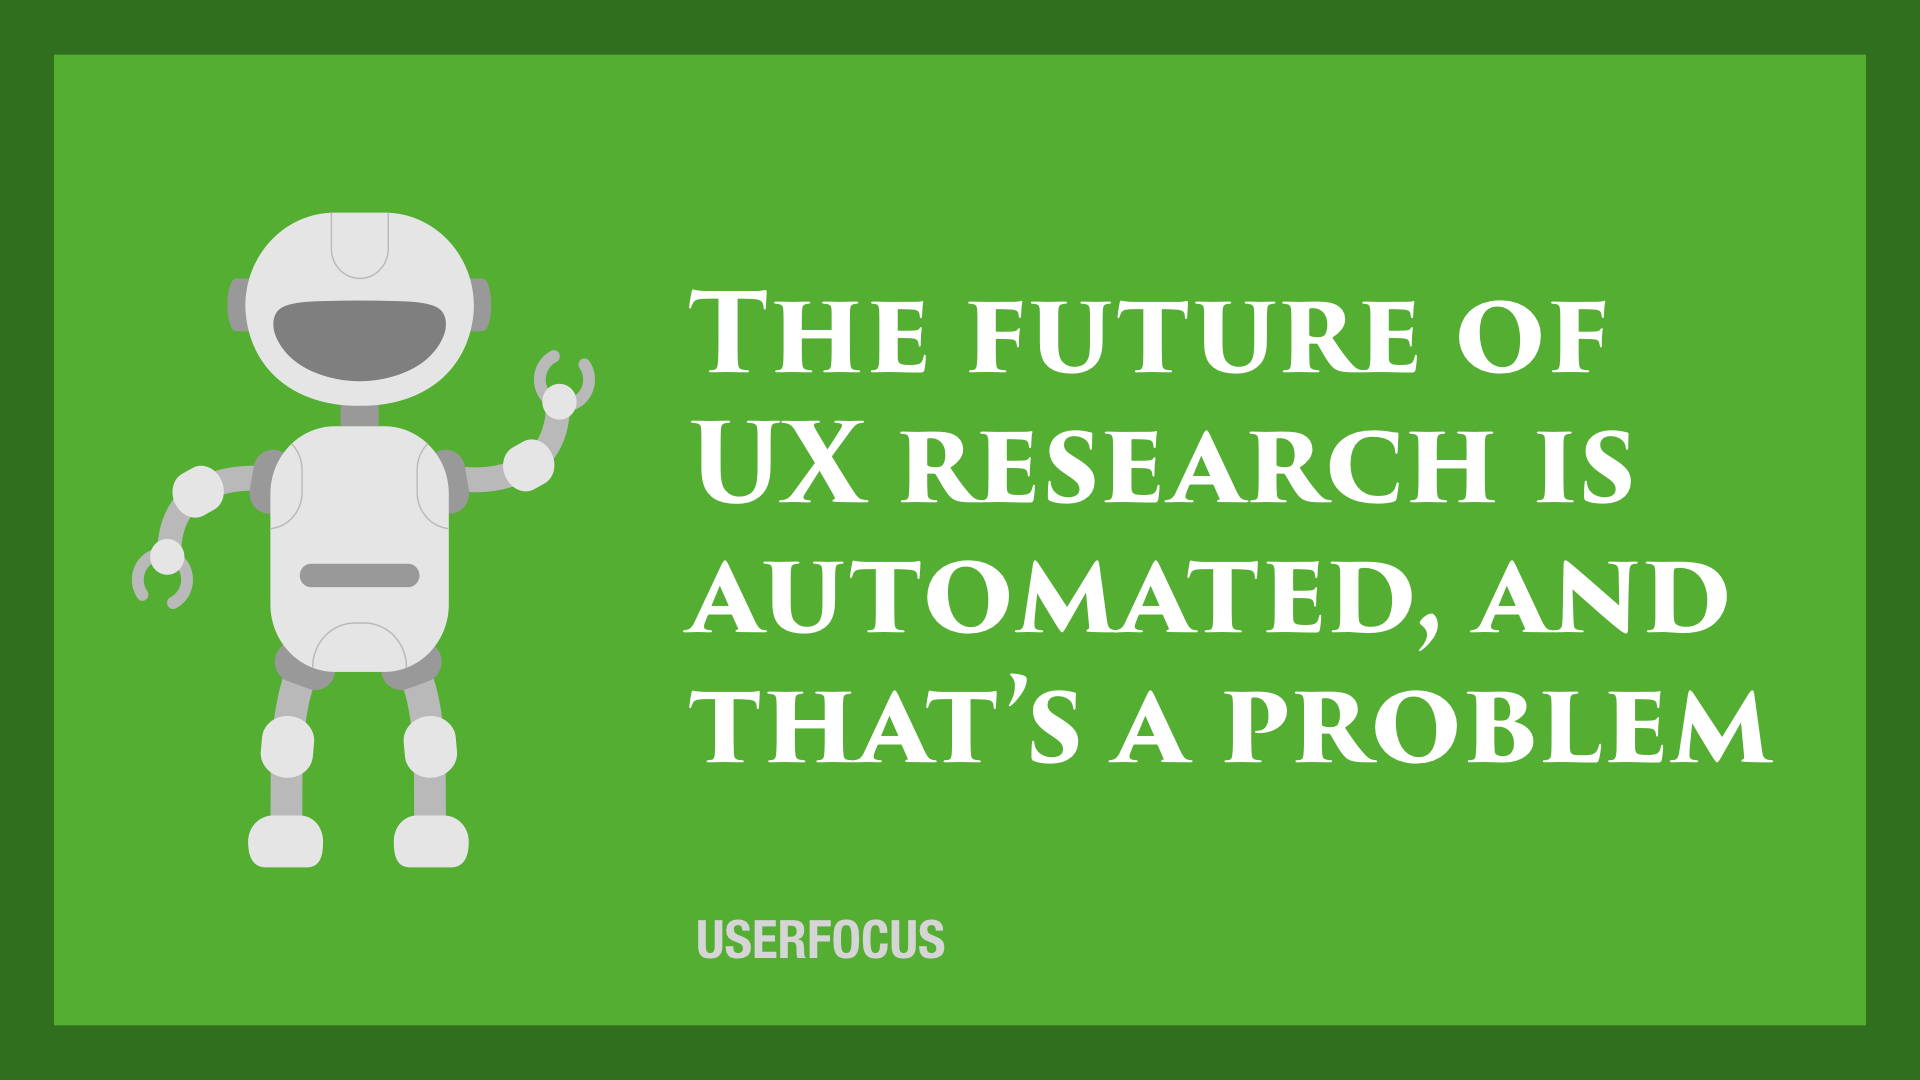 The future of UX research is automated, and that's a problem